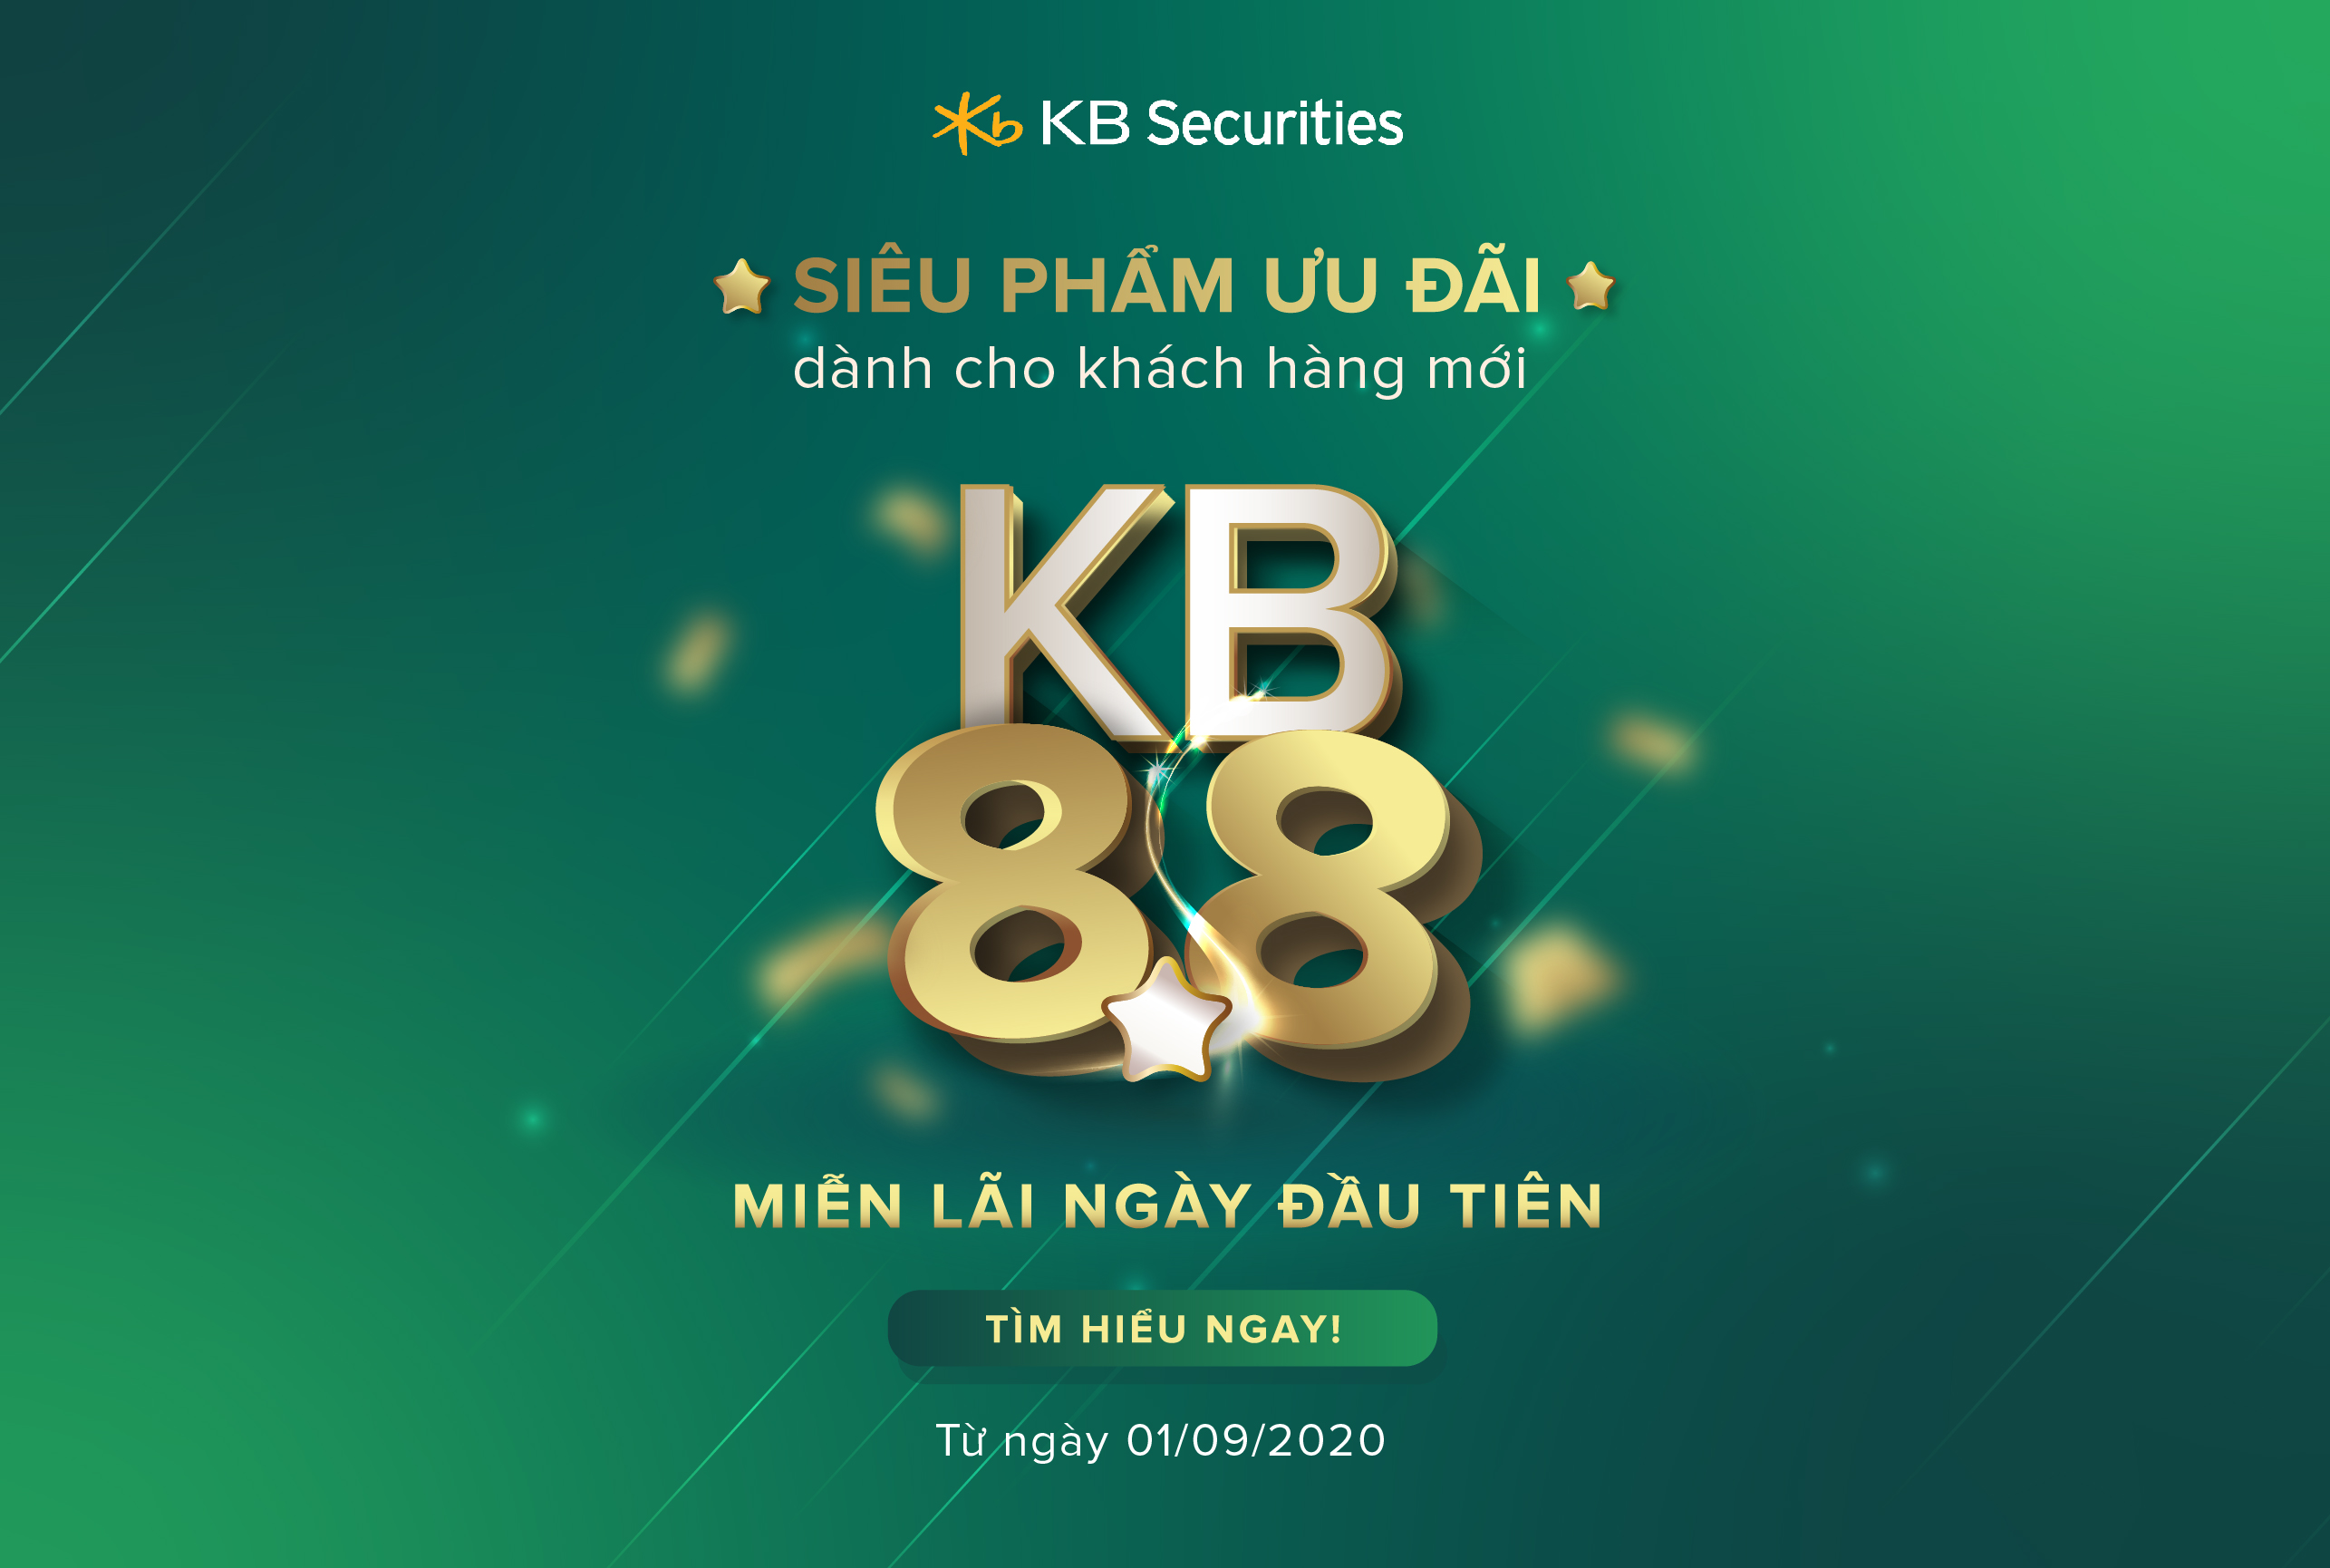 Launching KB 8.8 promotion and reducing standard financial service interest rate - KBSVs strong movement to support investors in the Covid-19 context